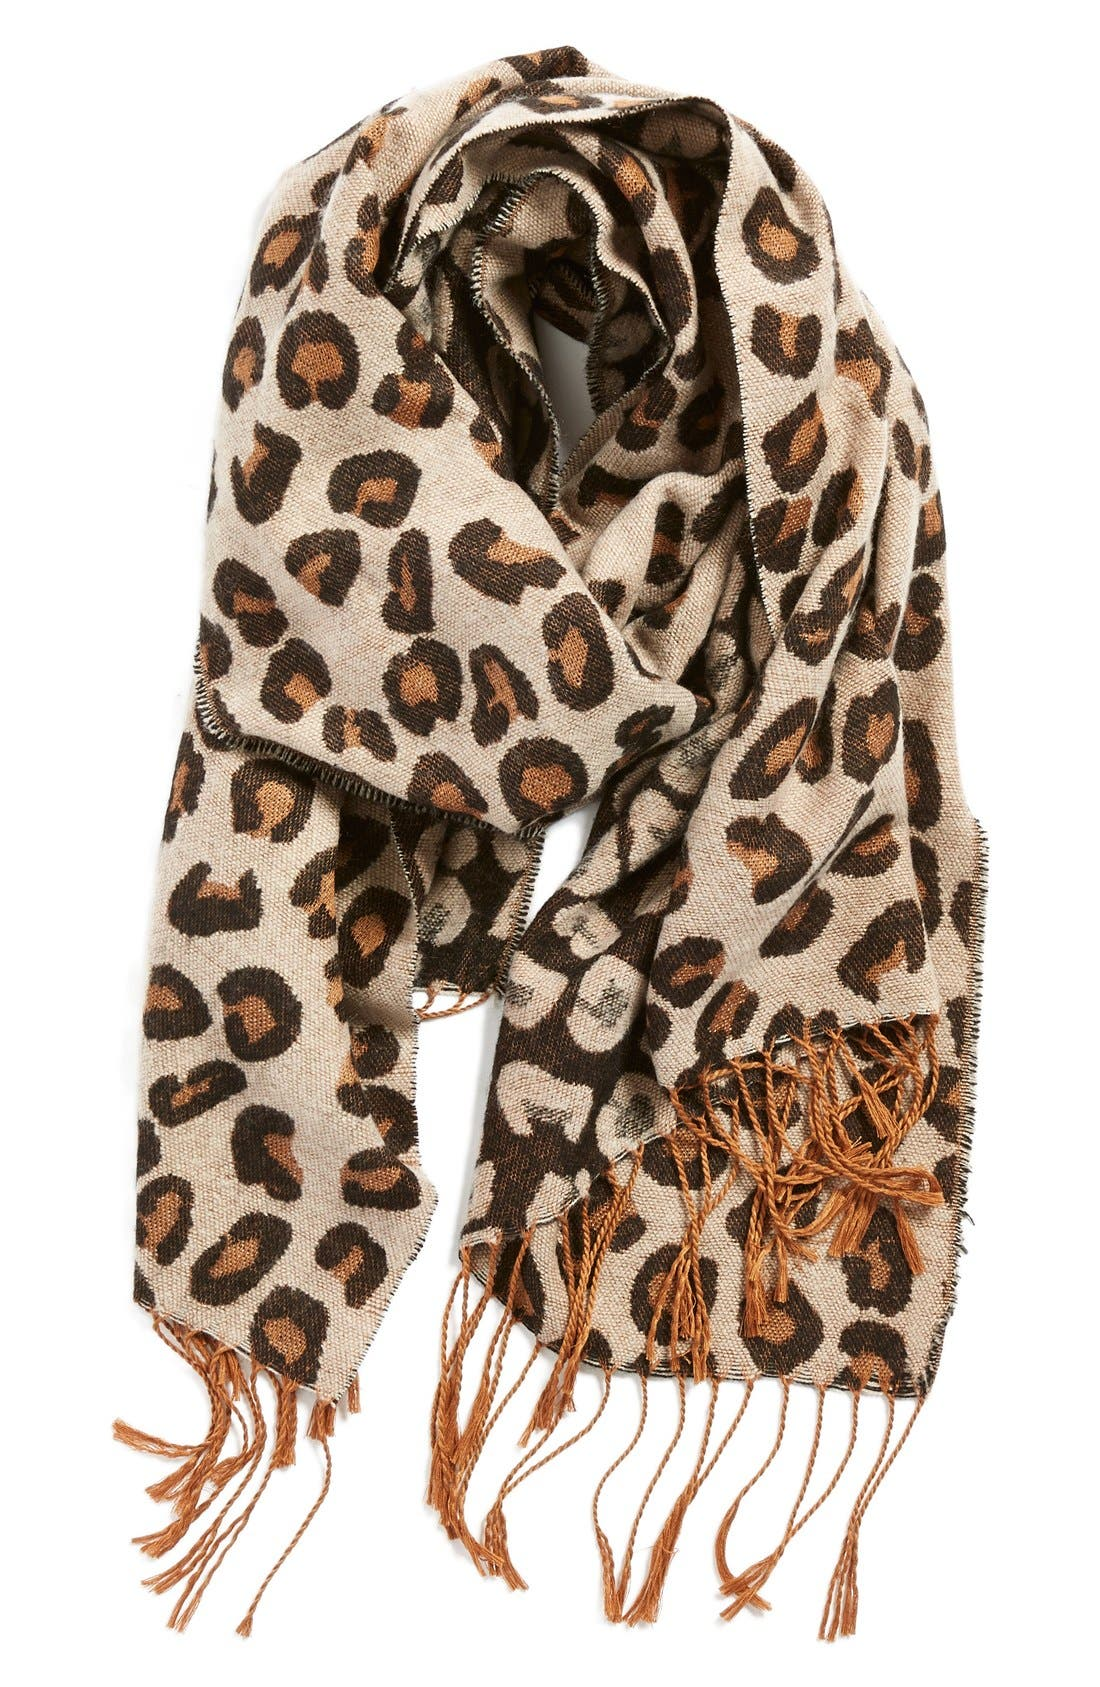 Alternate Image 1 Selected - BP Leopard Print Fringe Oblong Scarf